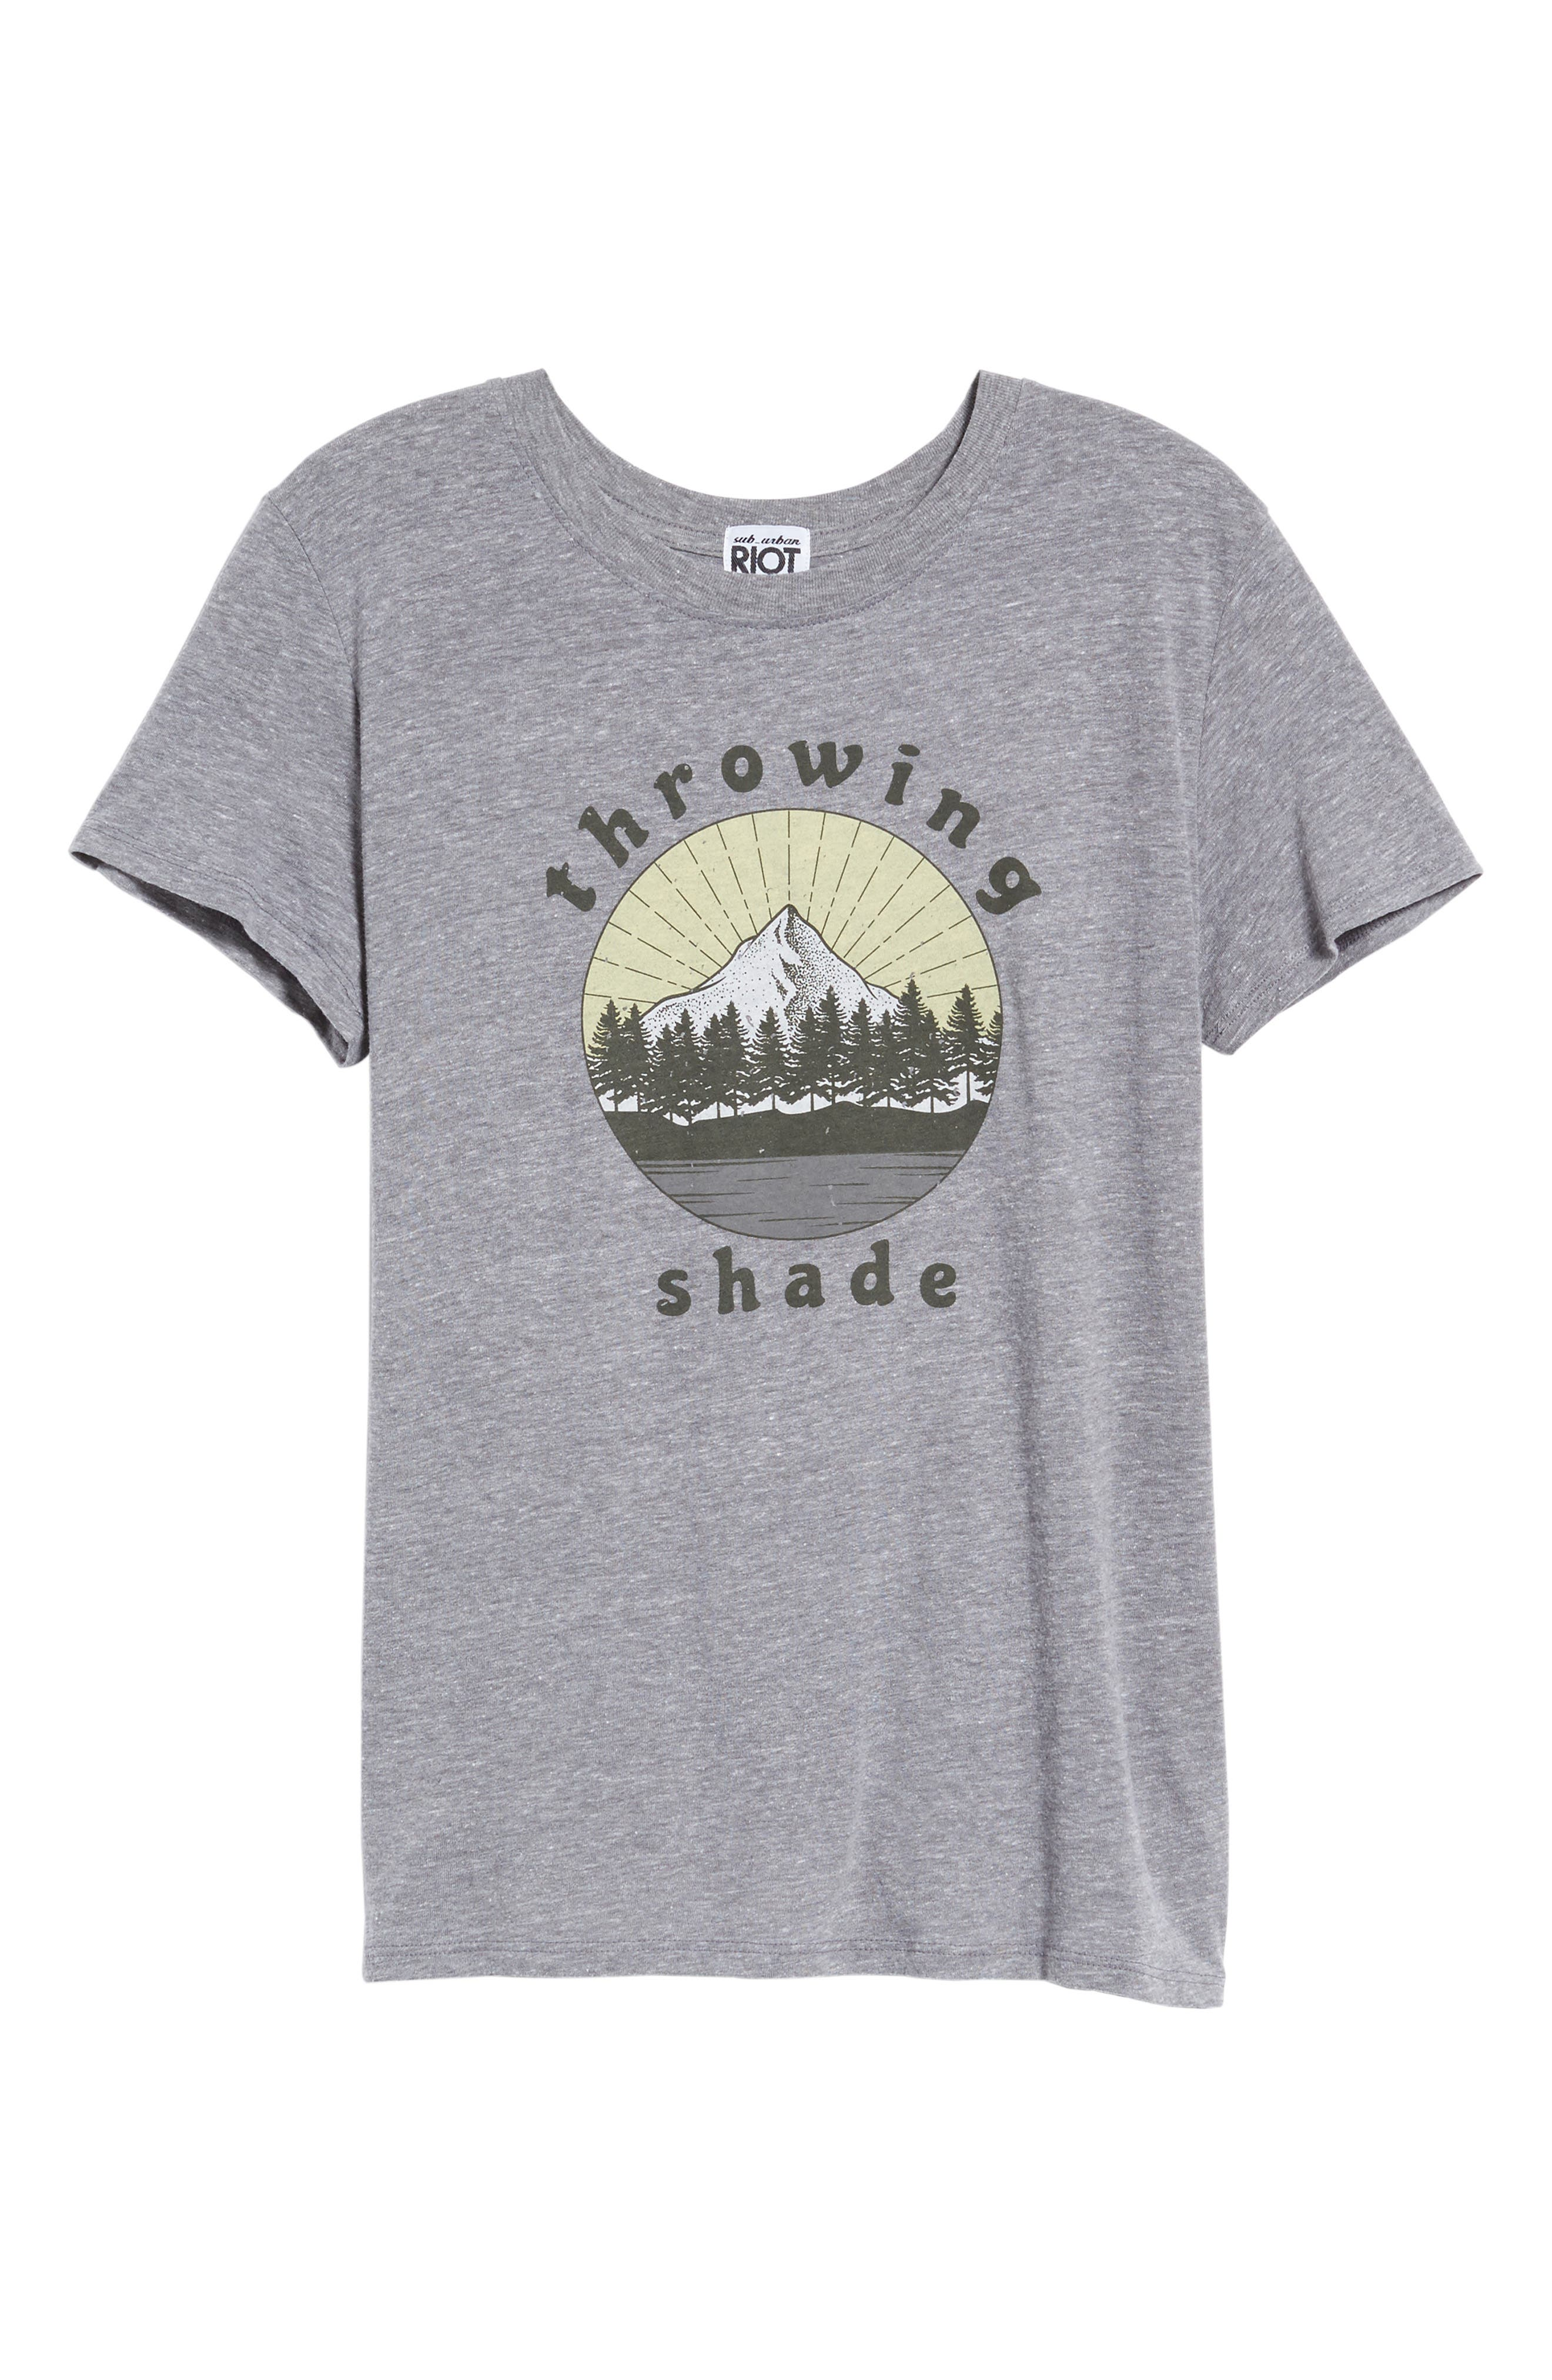 Throwing Shade Graphic Tee,                             Alternate thumbnail 6, color,